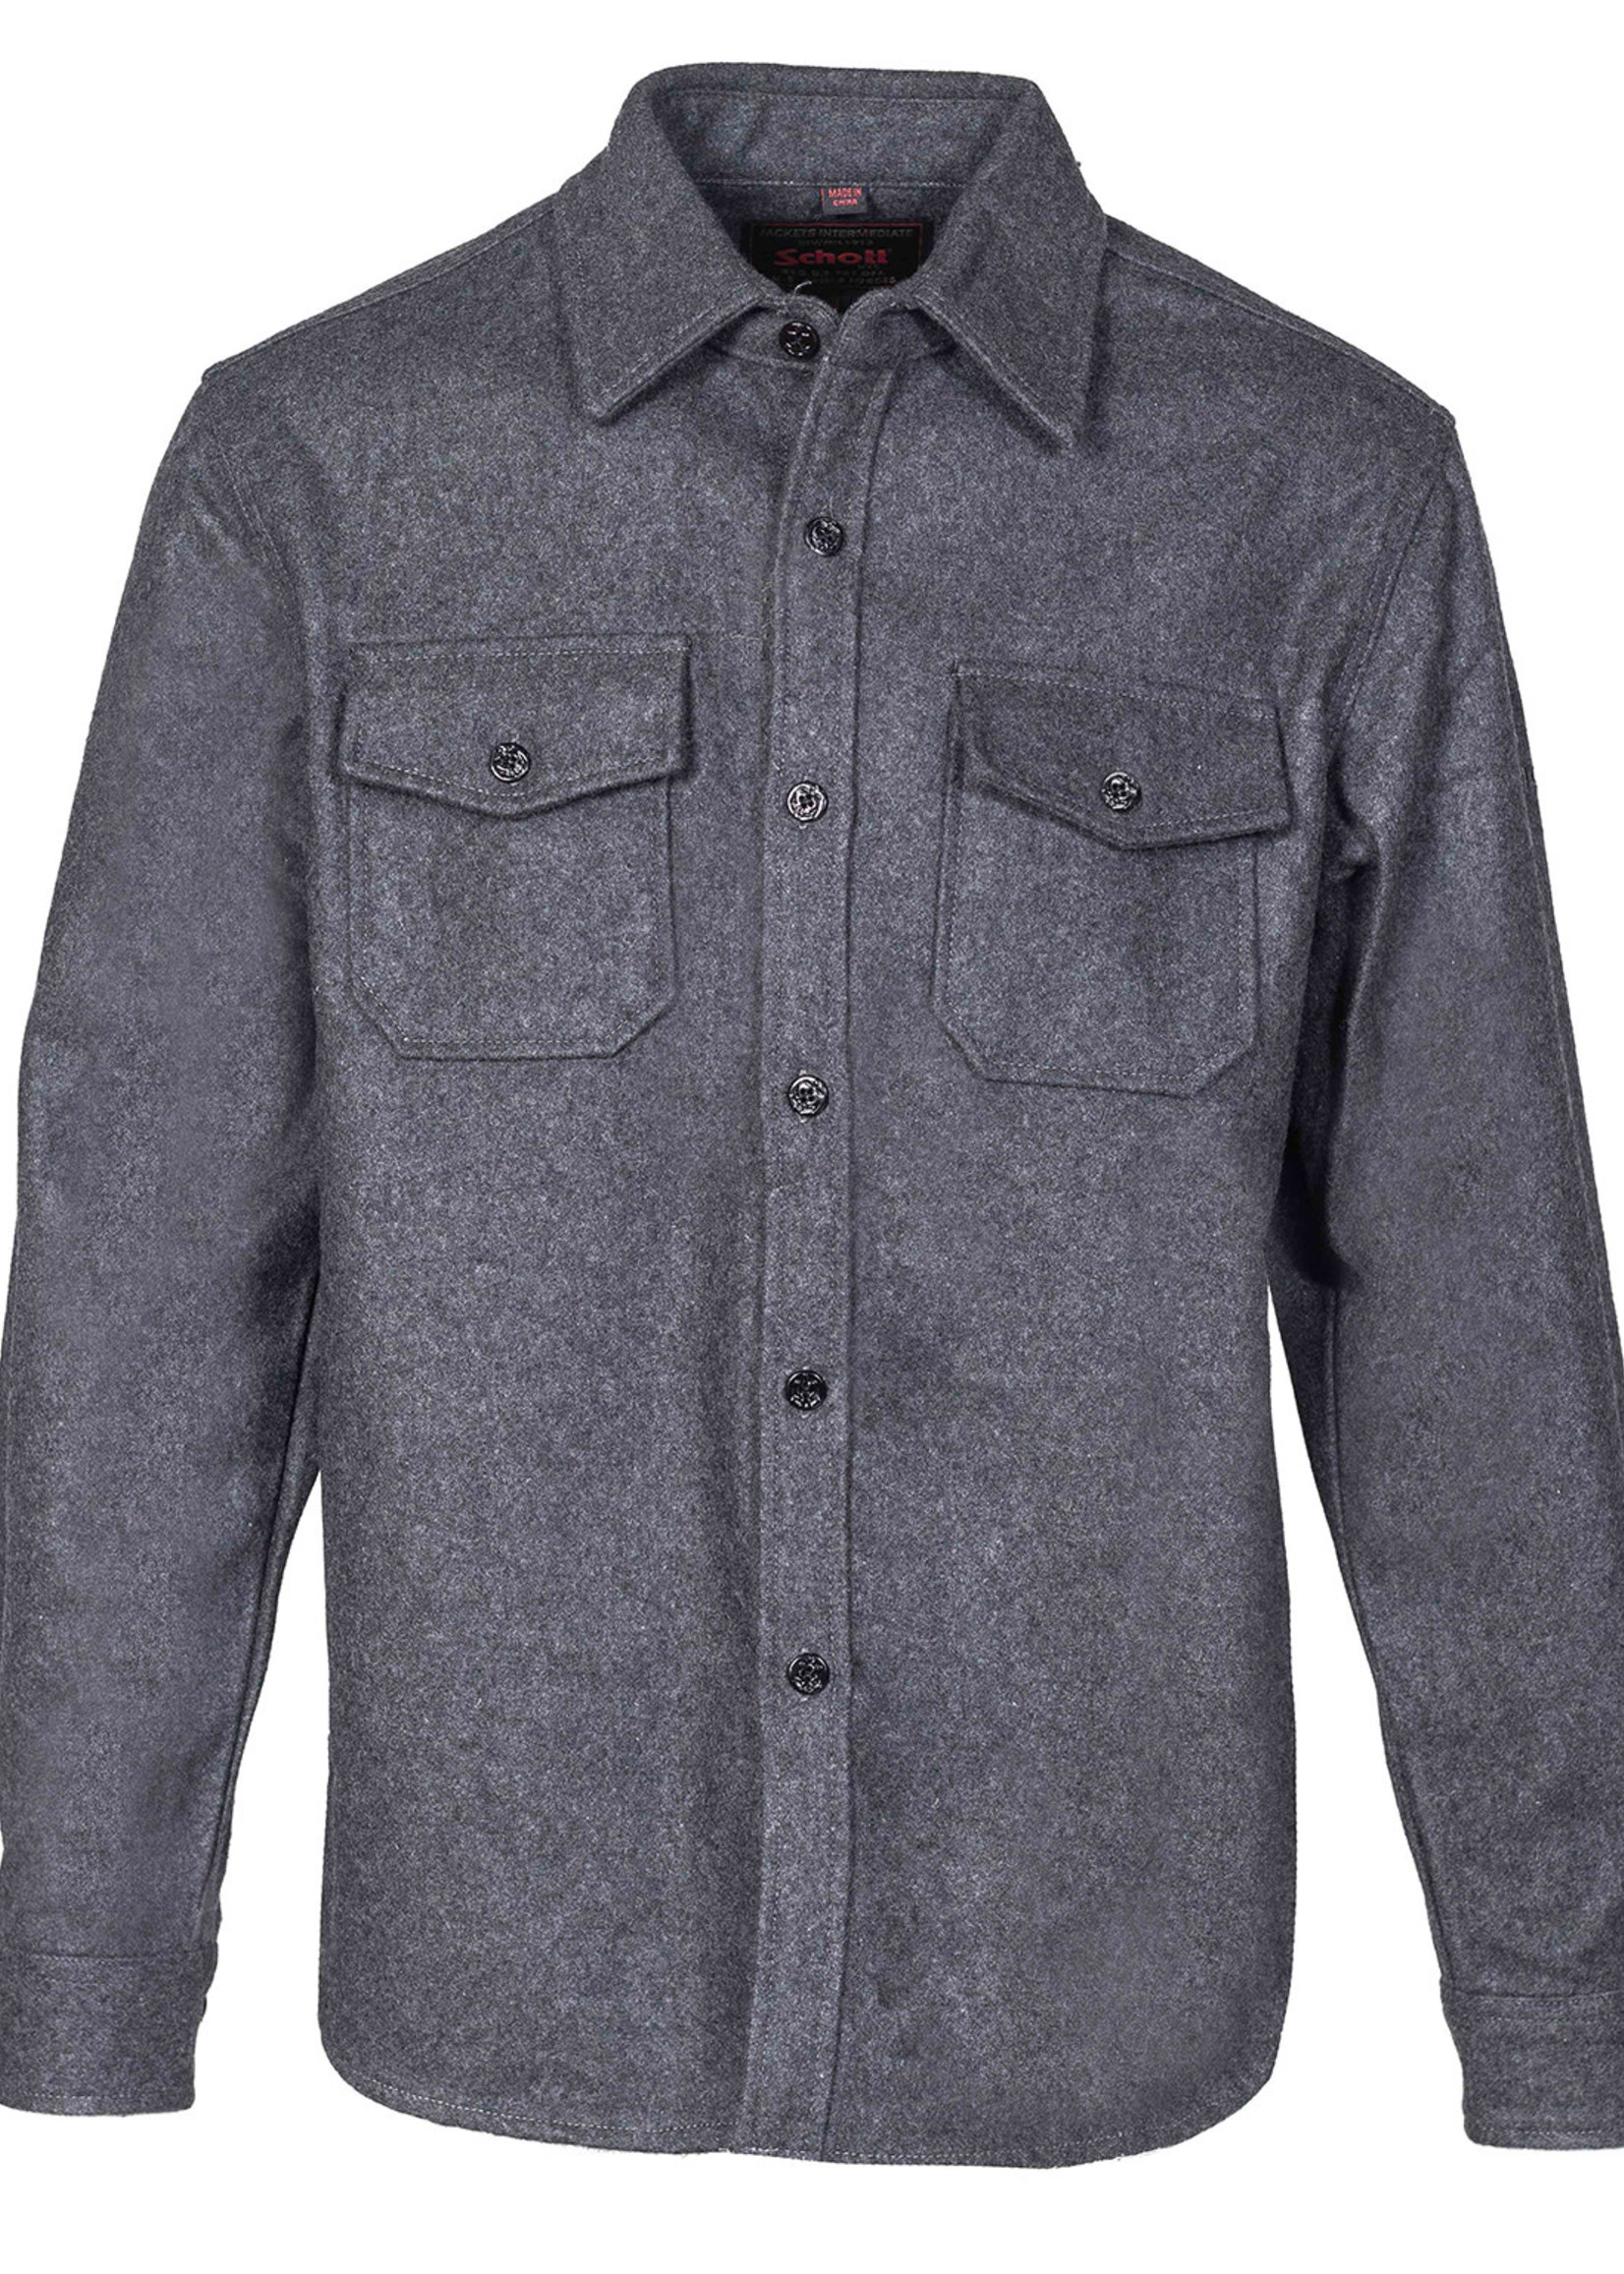 CPO Overshirt Grey Wool Flannel by Schott